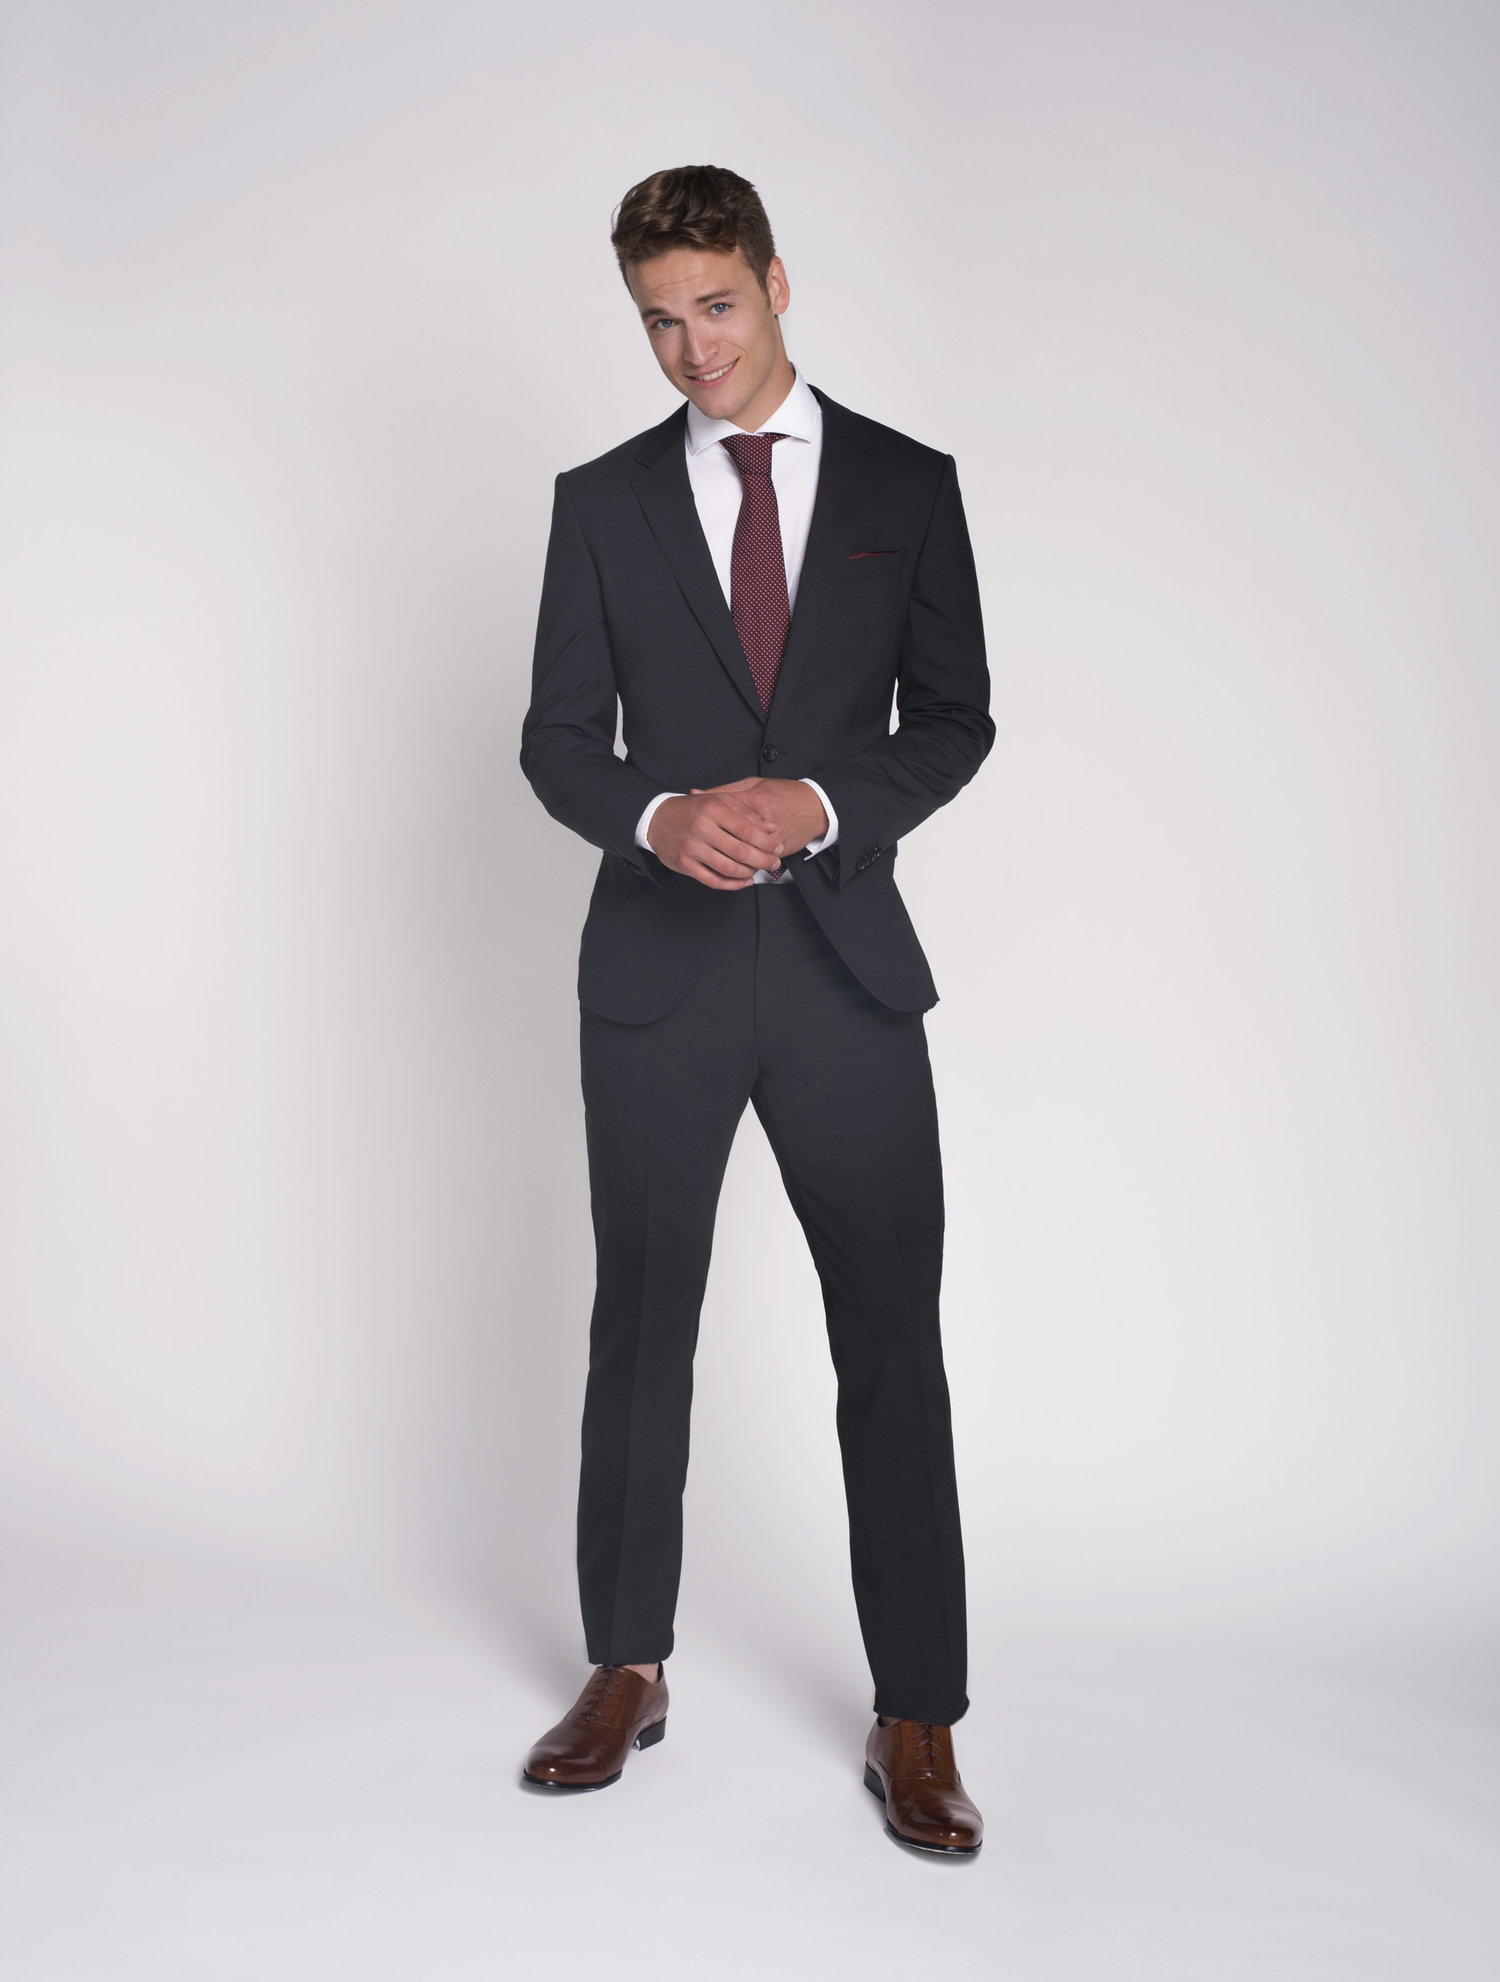 0a276adeb6a How to nail a job interview... with your attire. — Ensemble